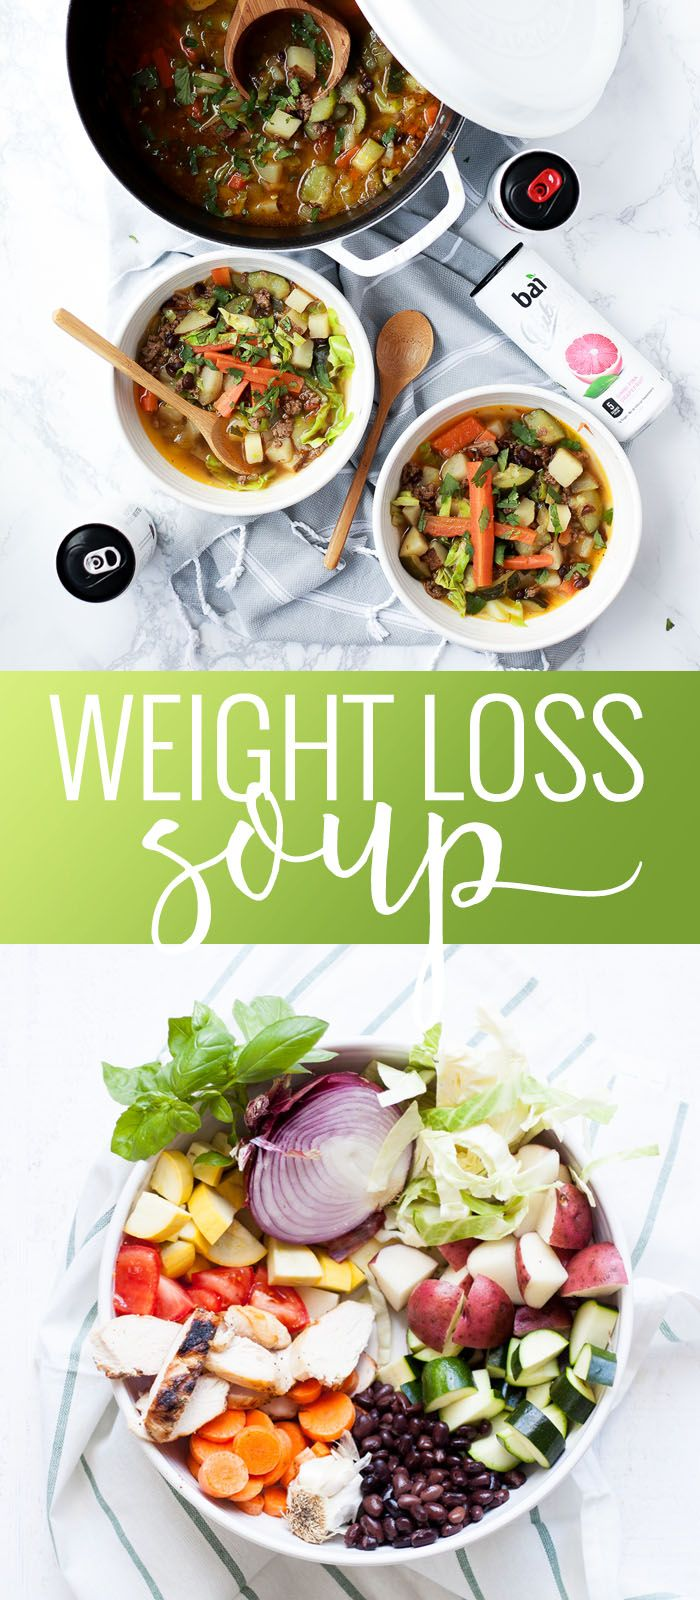 Diet plan by ayesha abbas picture 2